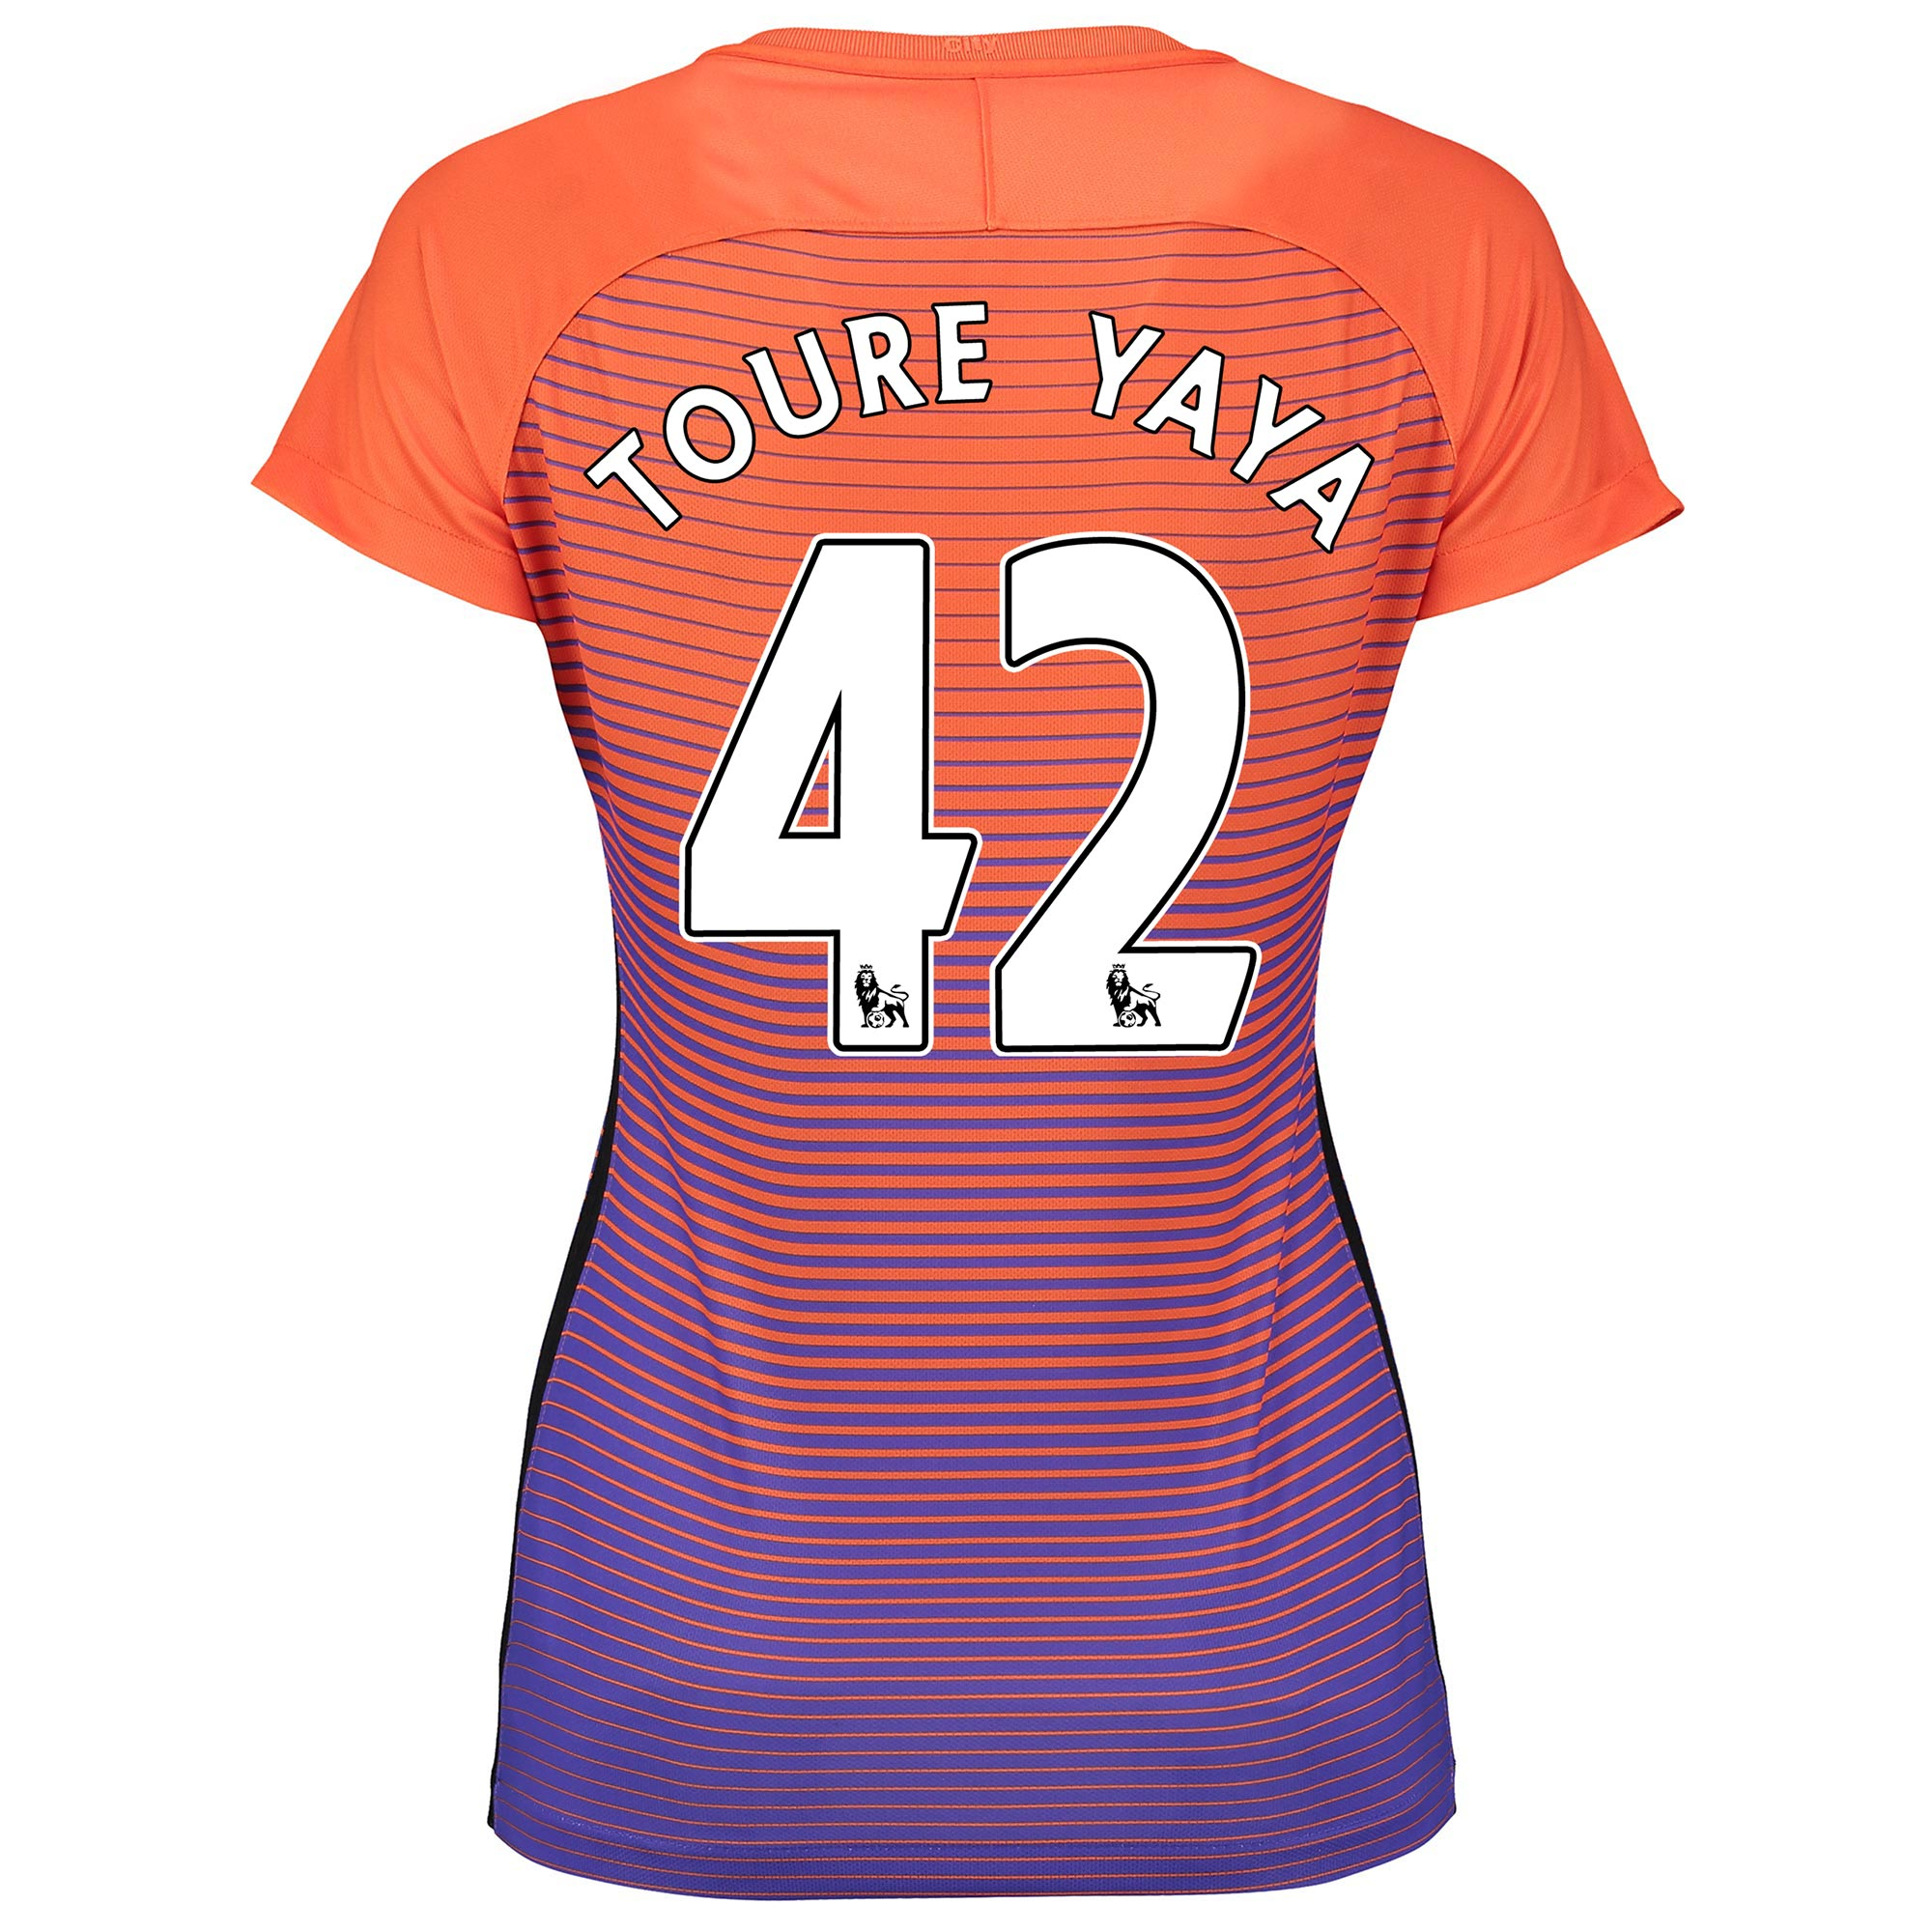 Manchester City Third Stadium Shirt 2016-17 - Womens with Toure Yaya 4